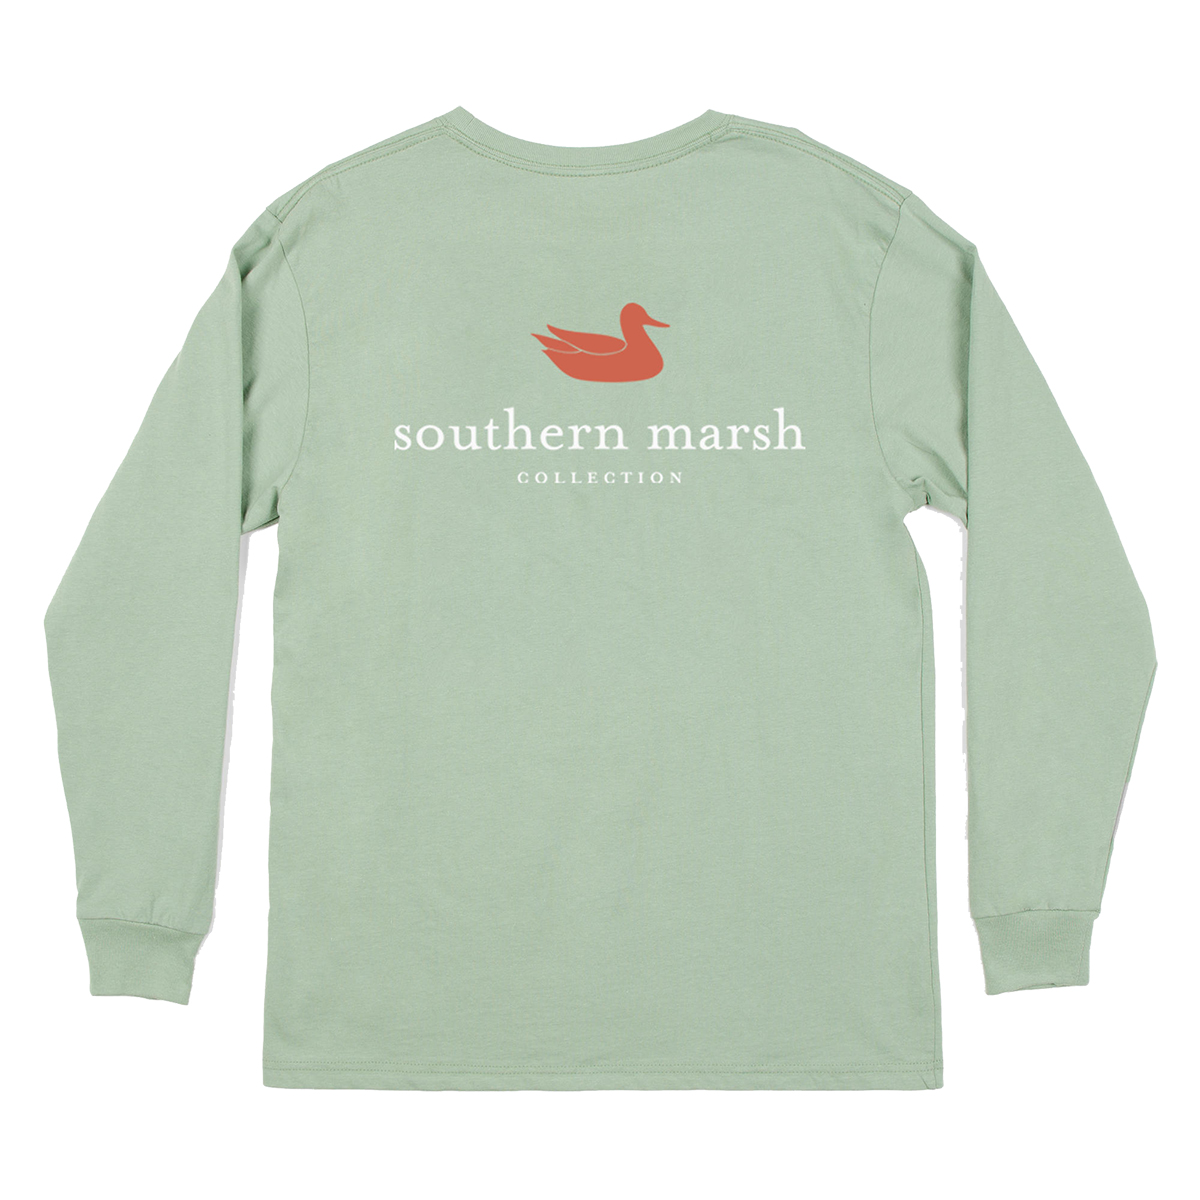 southern marsh authentic long sleeve t shirt ebay